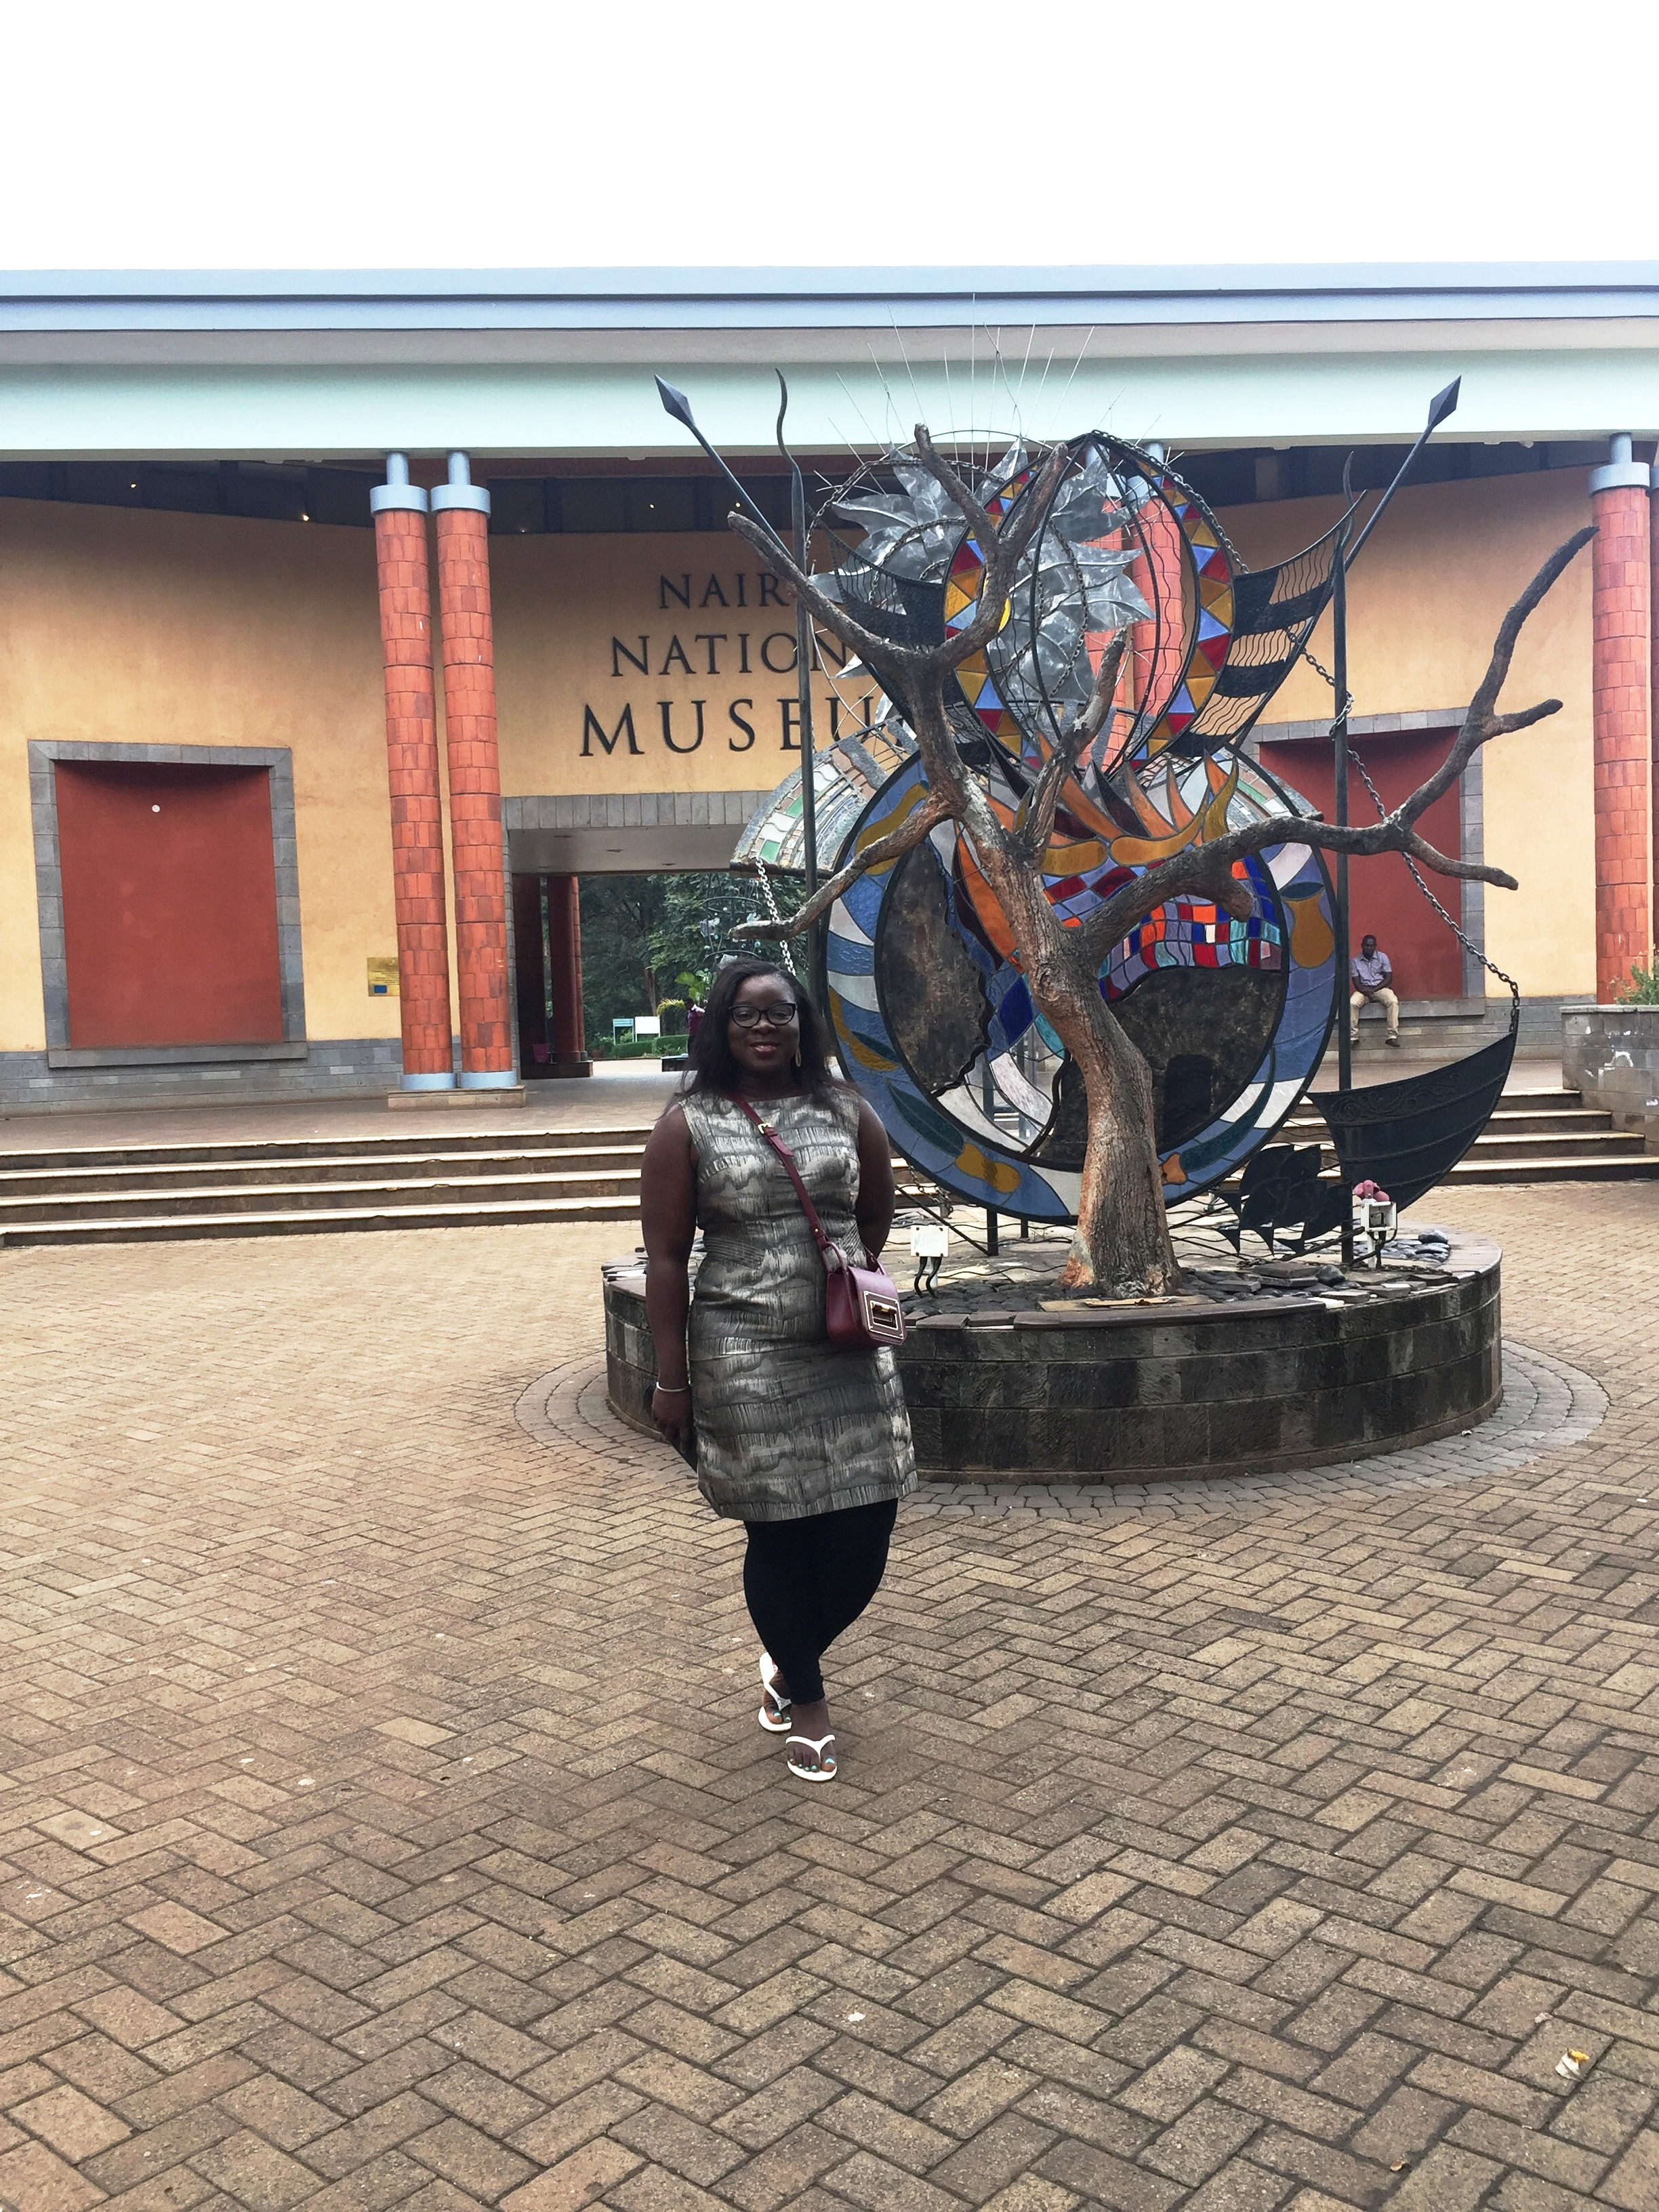 Nairobi National Museum | The Ajalabug